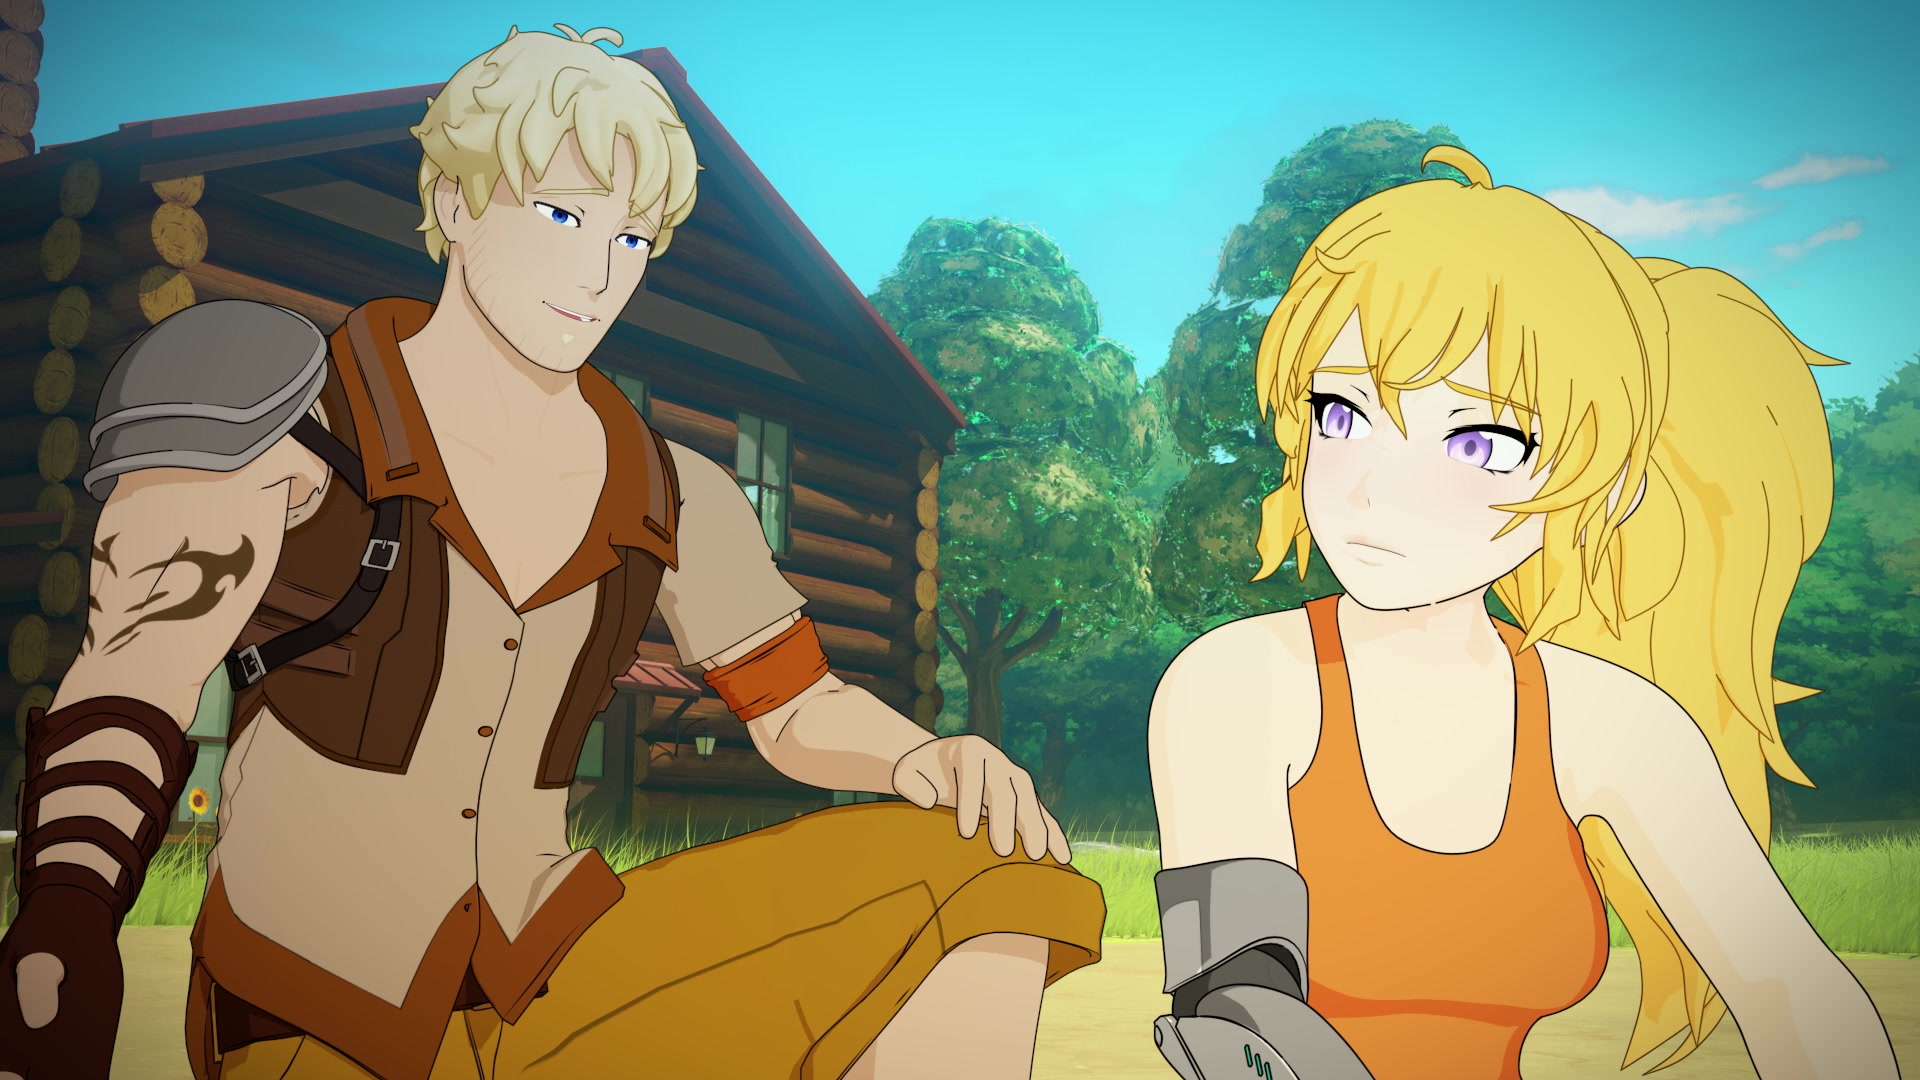 RWBY Volume 4 Episode 9, Two Steps Forward, Two Steps Back